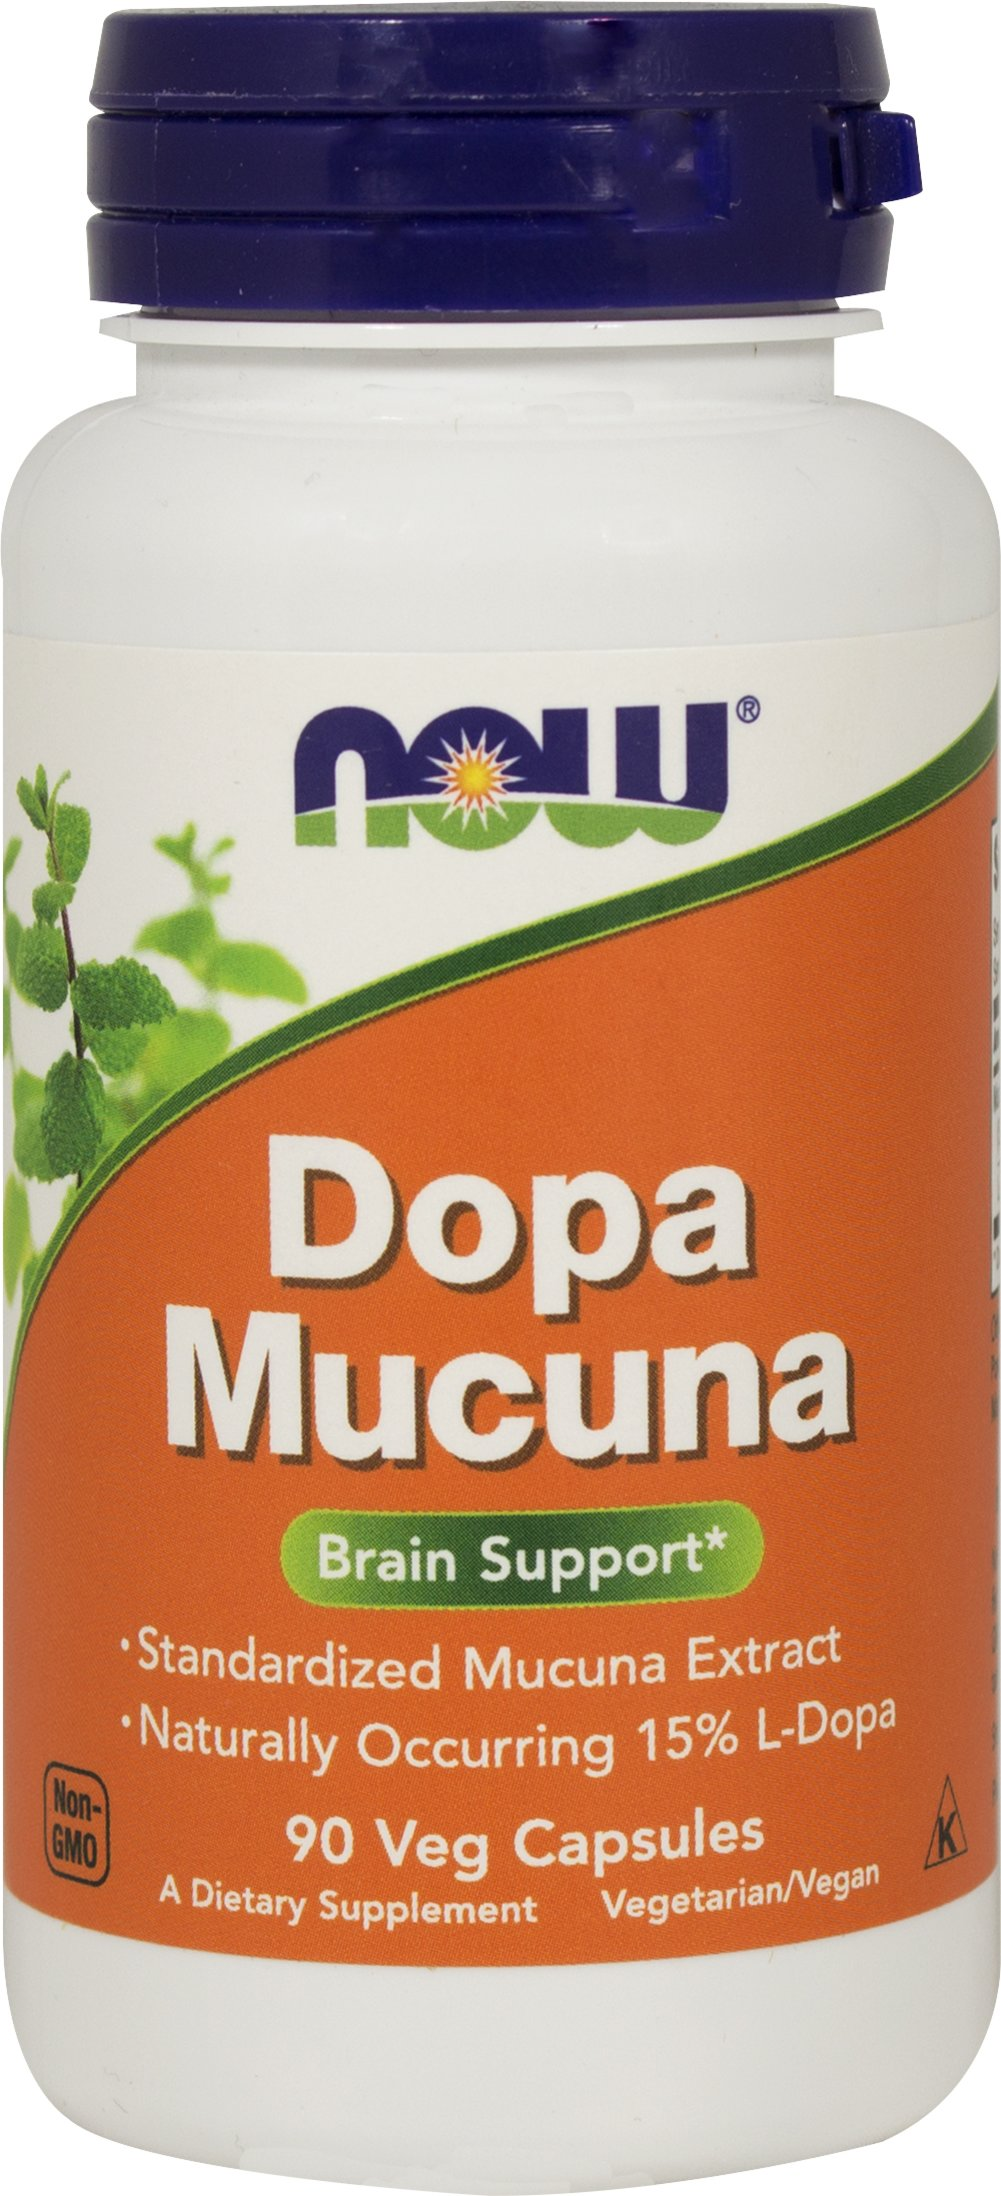 DOPA Mucuna 400 mg <p><strong>From the Manufacturer's Label:</strong></p><p><strong>Standardized Velvet Bean Extract</strong></p><p><strong>Mucuna pruriens</strong></p>Mucuna pruriens, commonly known as Velvet Bean, has been used in the traditional Ayurvedic system in India for thousands of years. NOW® DOPA Mucuna is 100% vegetarian**.<p></p><p>Manufactured by Now® Foods</p> 90 Vegi Caps